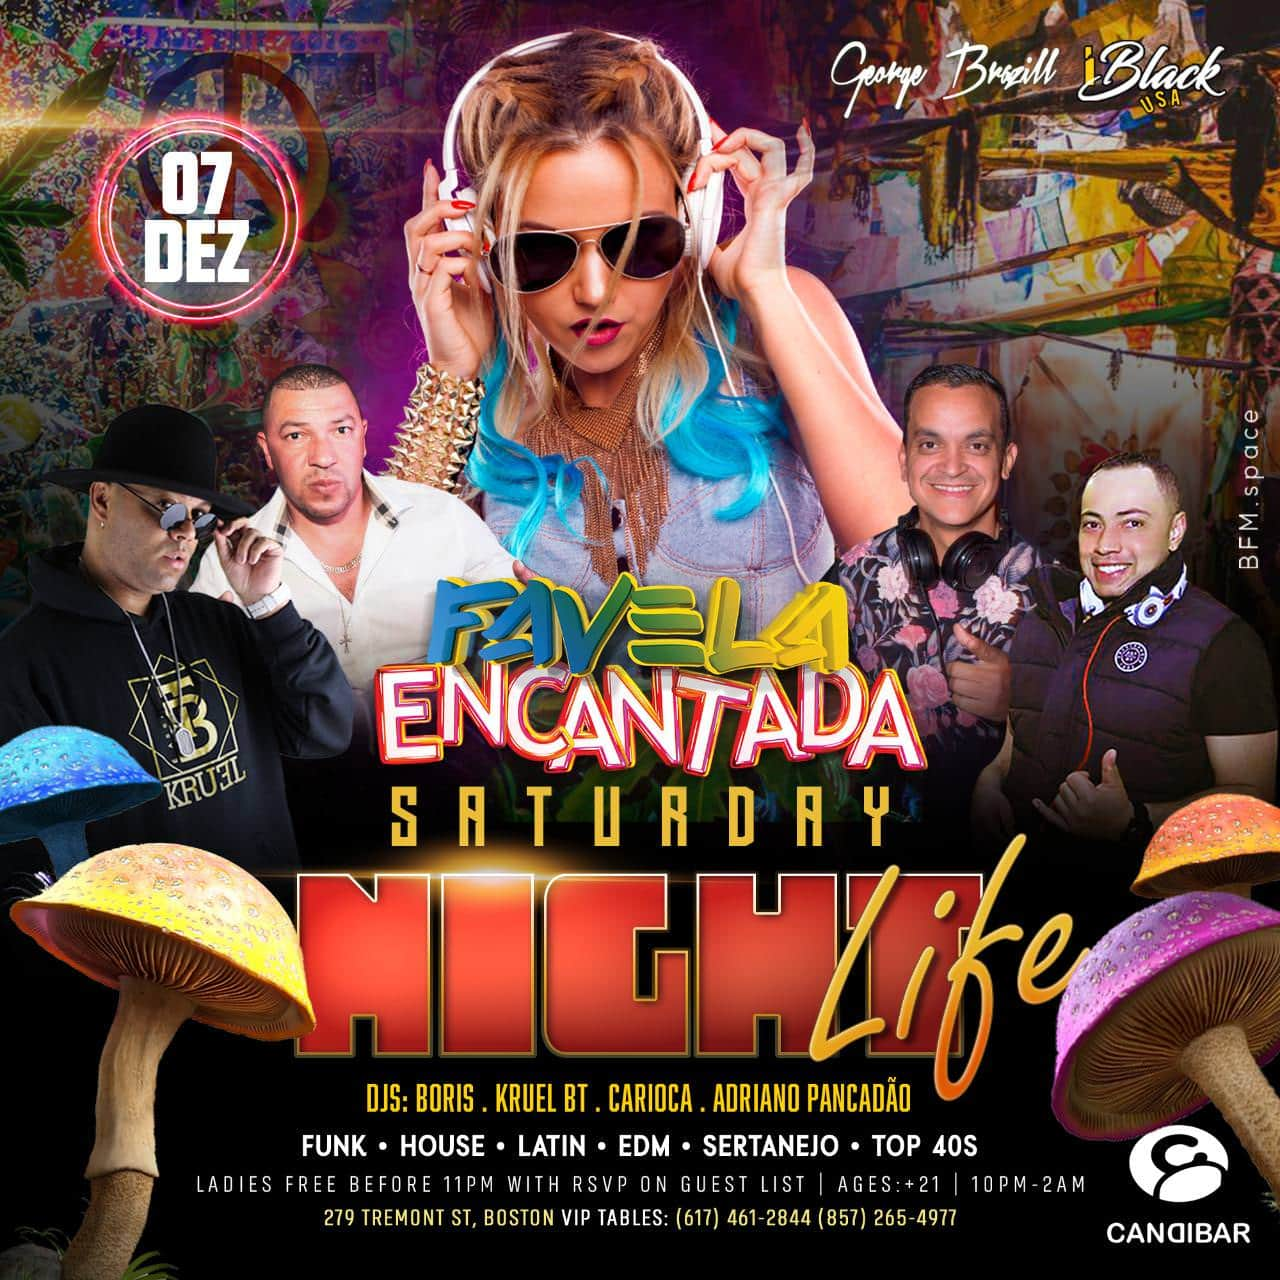 FAVELA ENCANTADA NIGHT LIFE 07 NOV CANDIBAR BOSTON | iBlackUSA